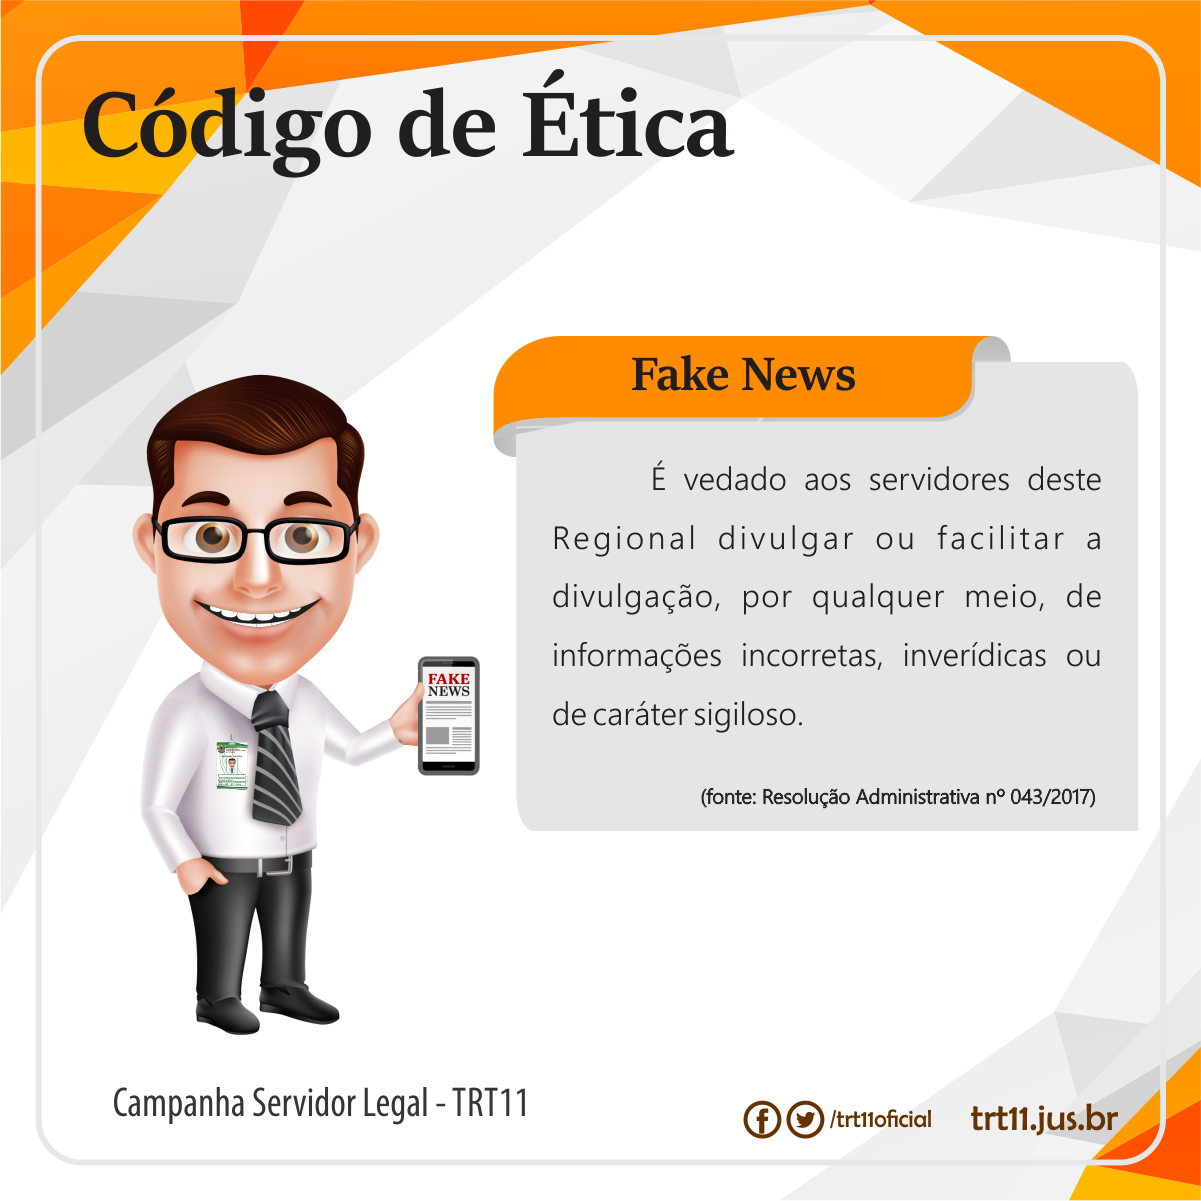 10 Campanha Servidor Legal Fake News